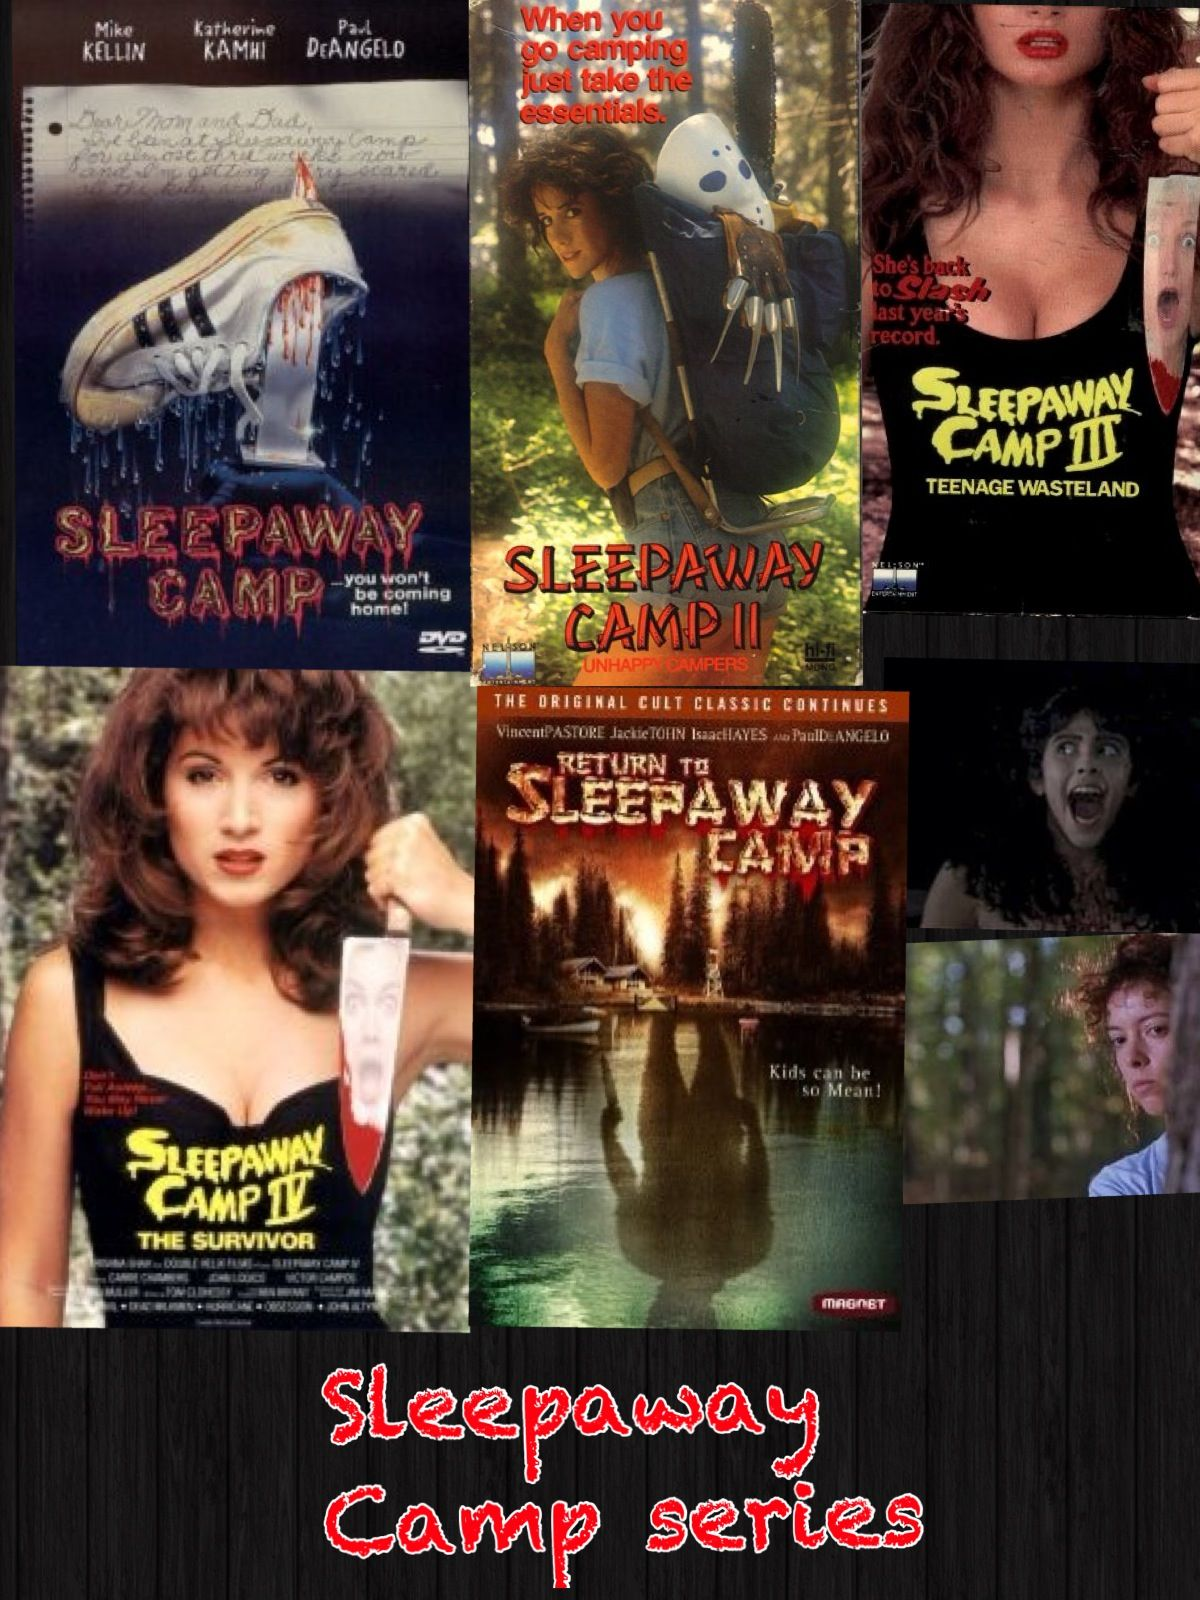 Probably, camp teen slasher movie what